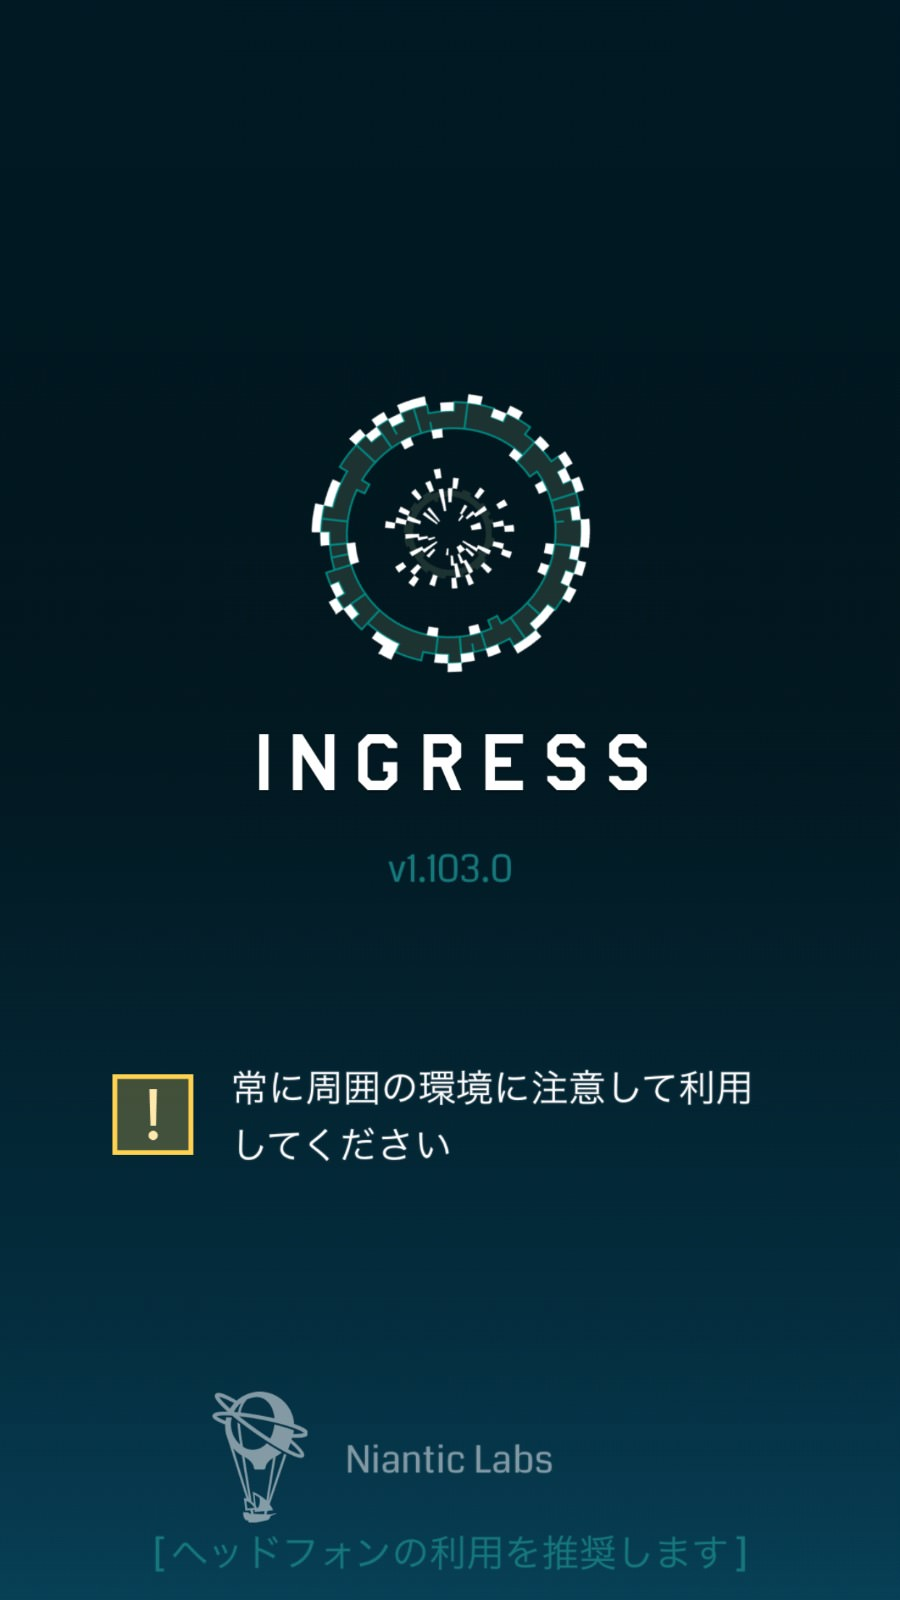 【Ingress】iOS版「Ingress 1.103.0」リリース